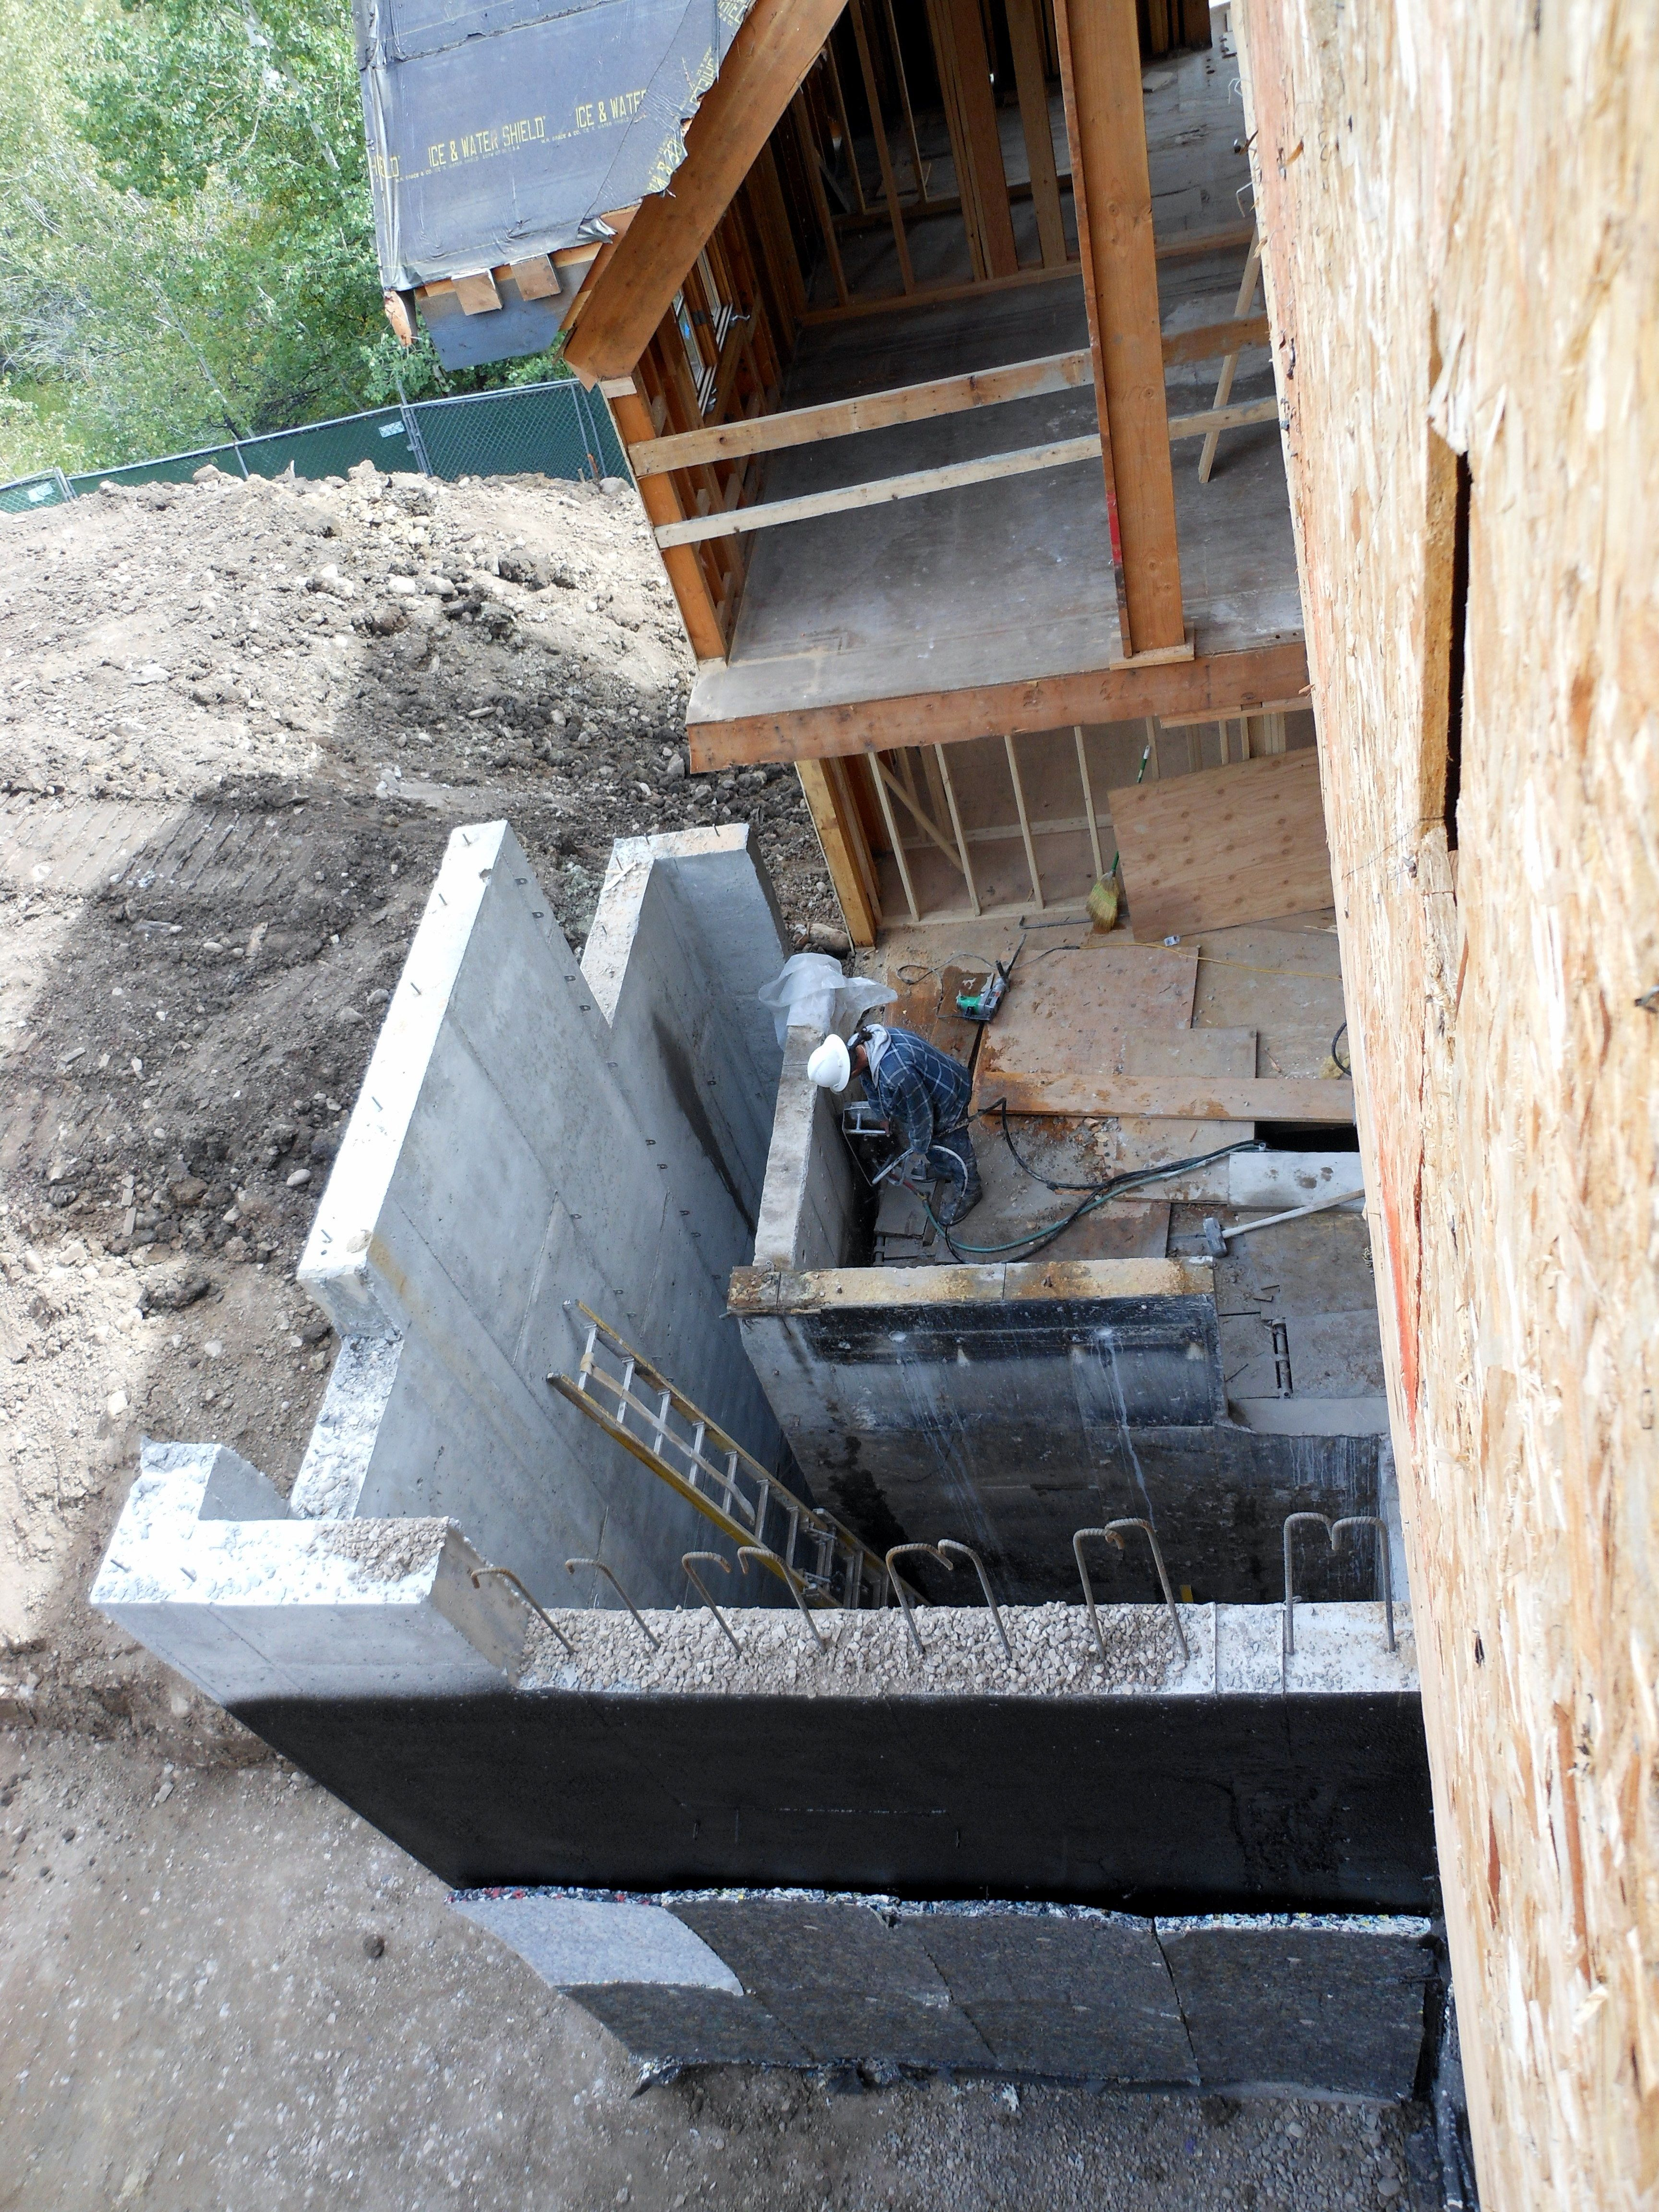 Interior Concrete Walls Are The Old Stairwell That Is Being Removed Concrete Wall Concrete Saw Old Things